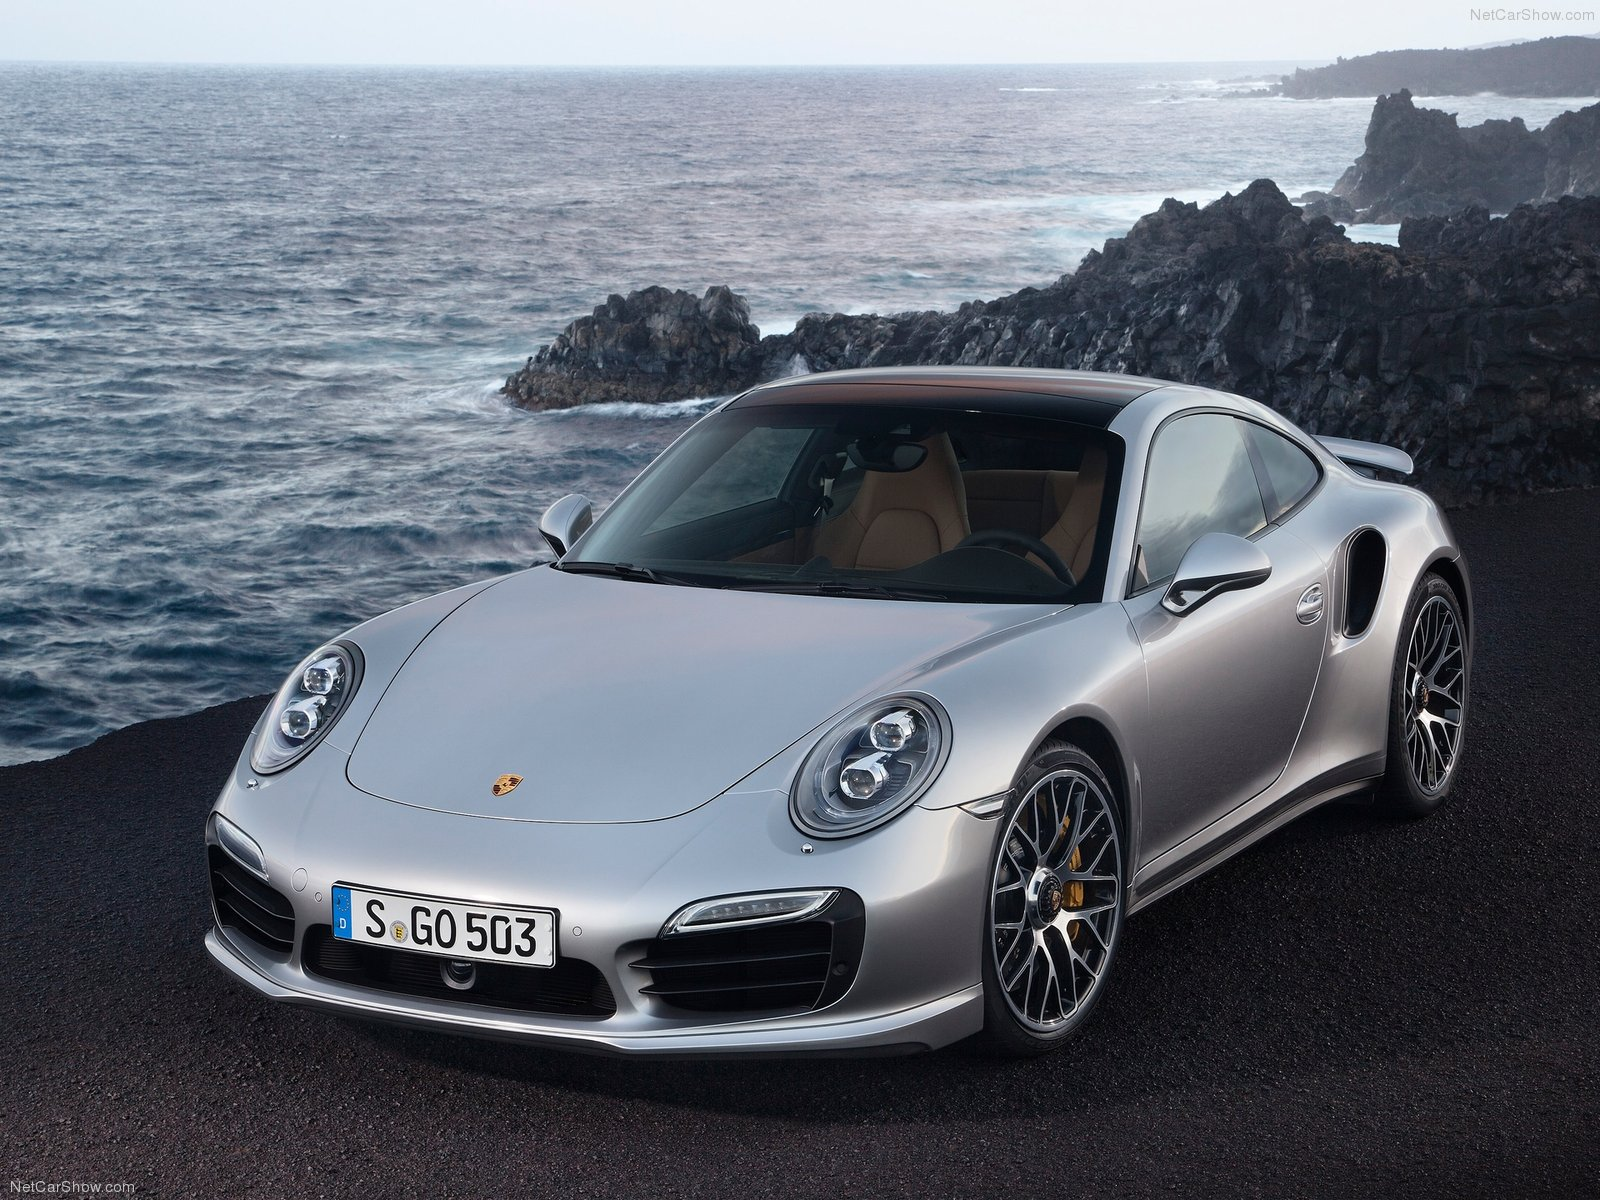 Porsche 911 Turbo S Coupe 2014